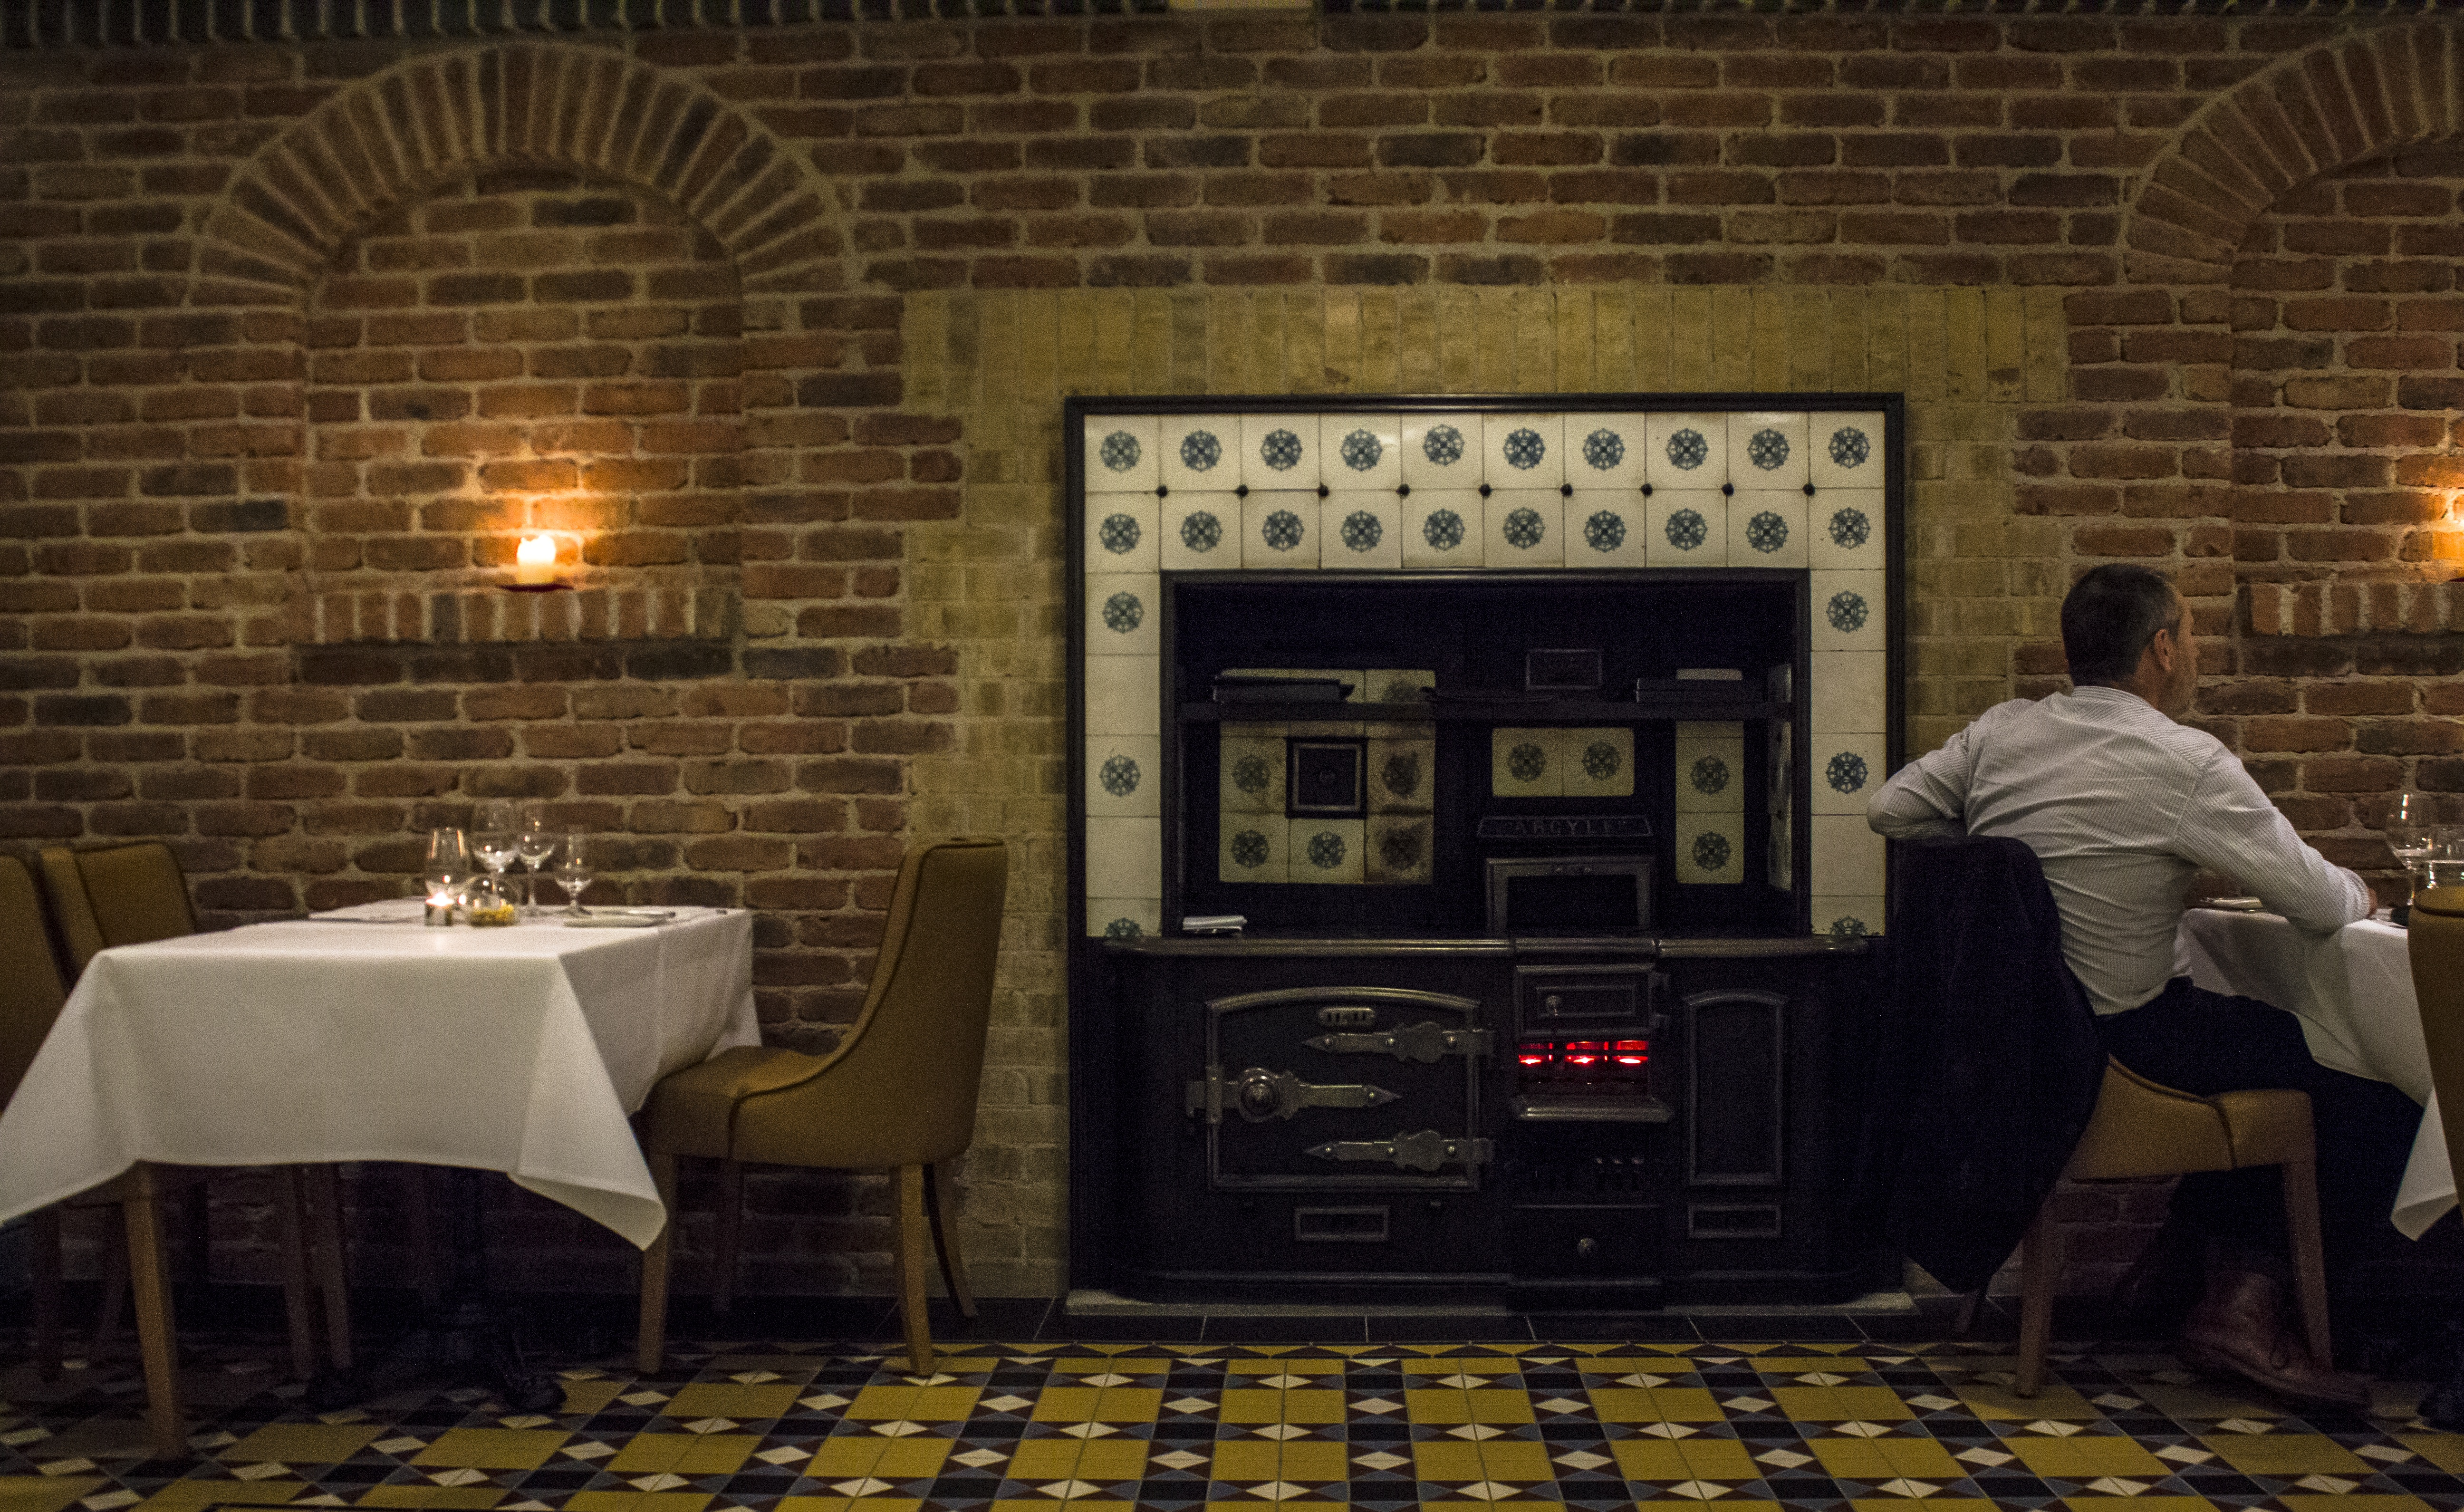 Tn2 Magazine | Review: The Hot Stove